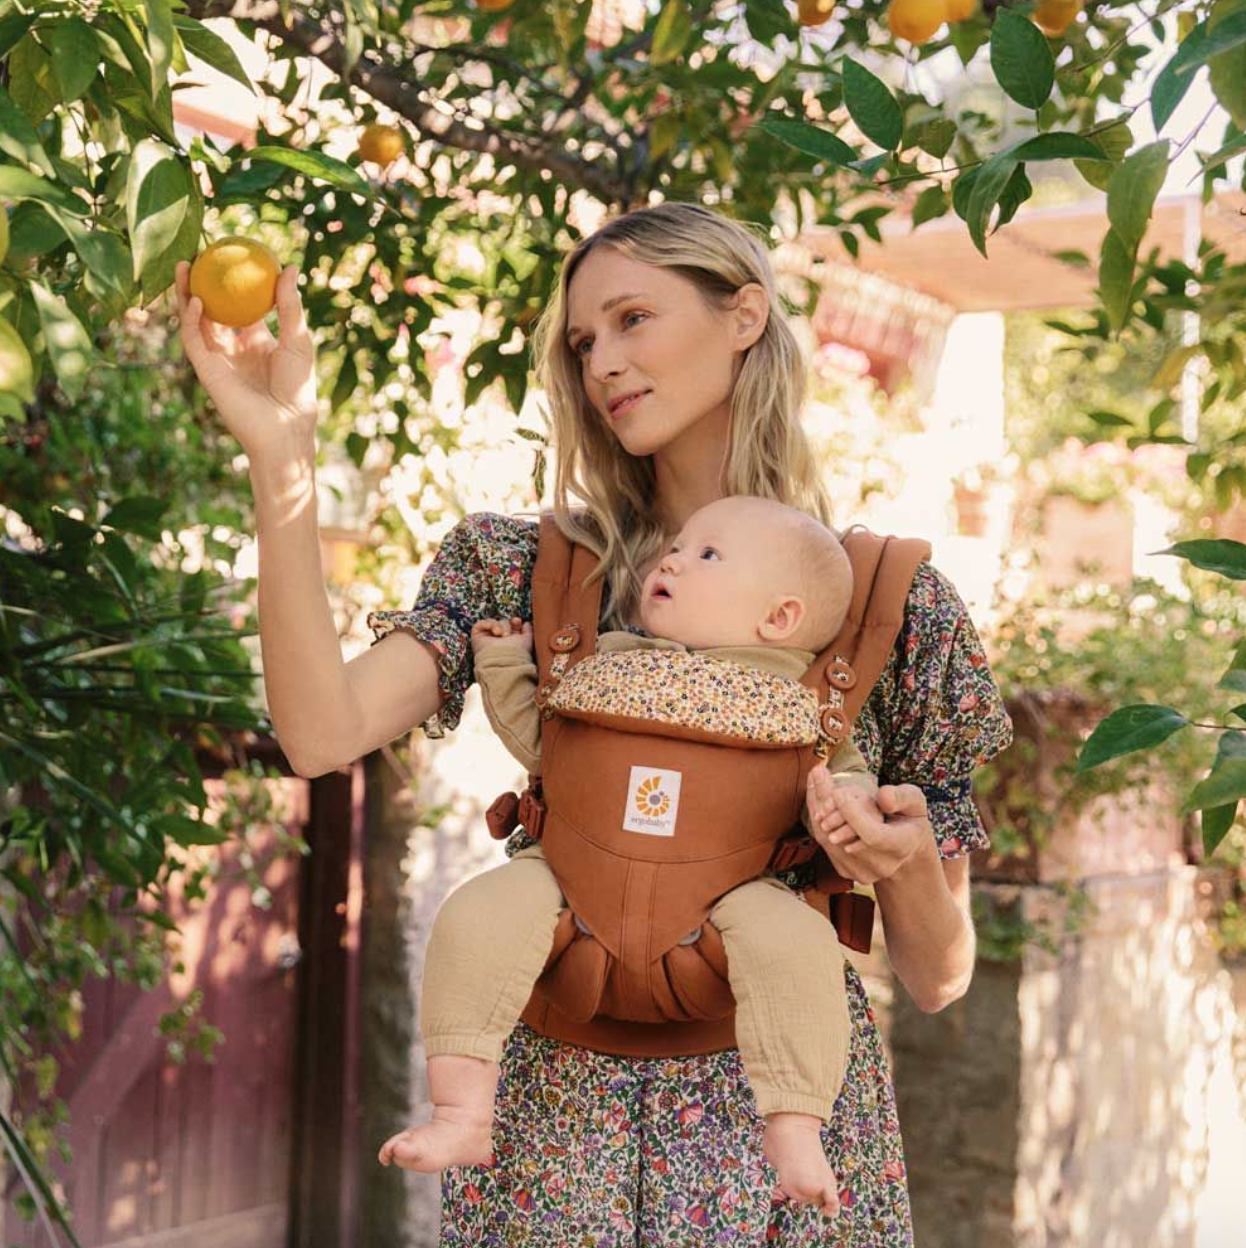 A blonde woman carries a baby in an omni 360 baby carrier in the colorway field of daisies. She is picking an orange from a tree.